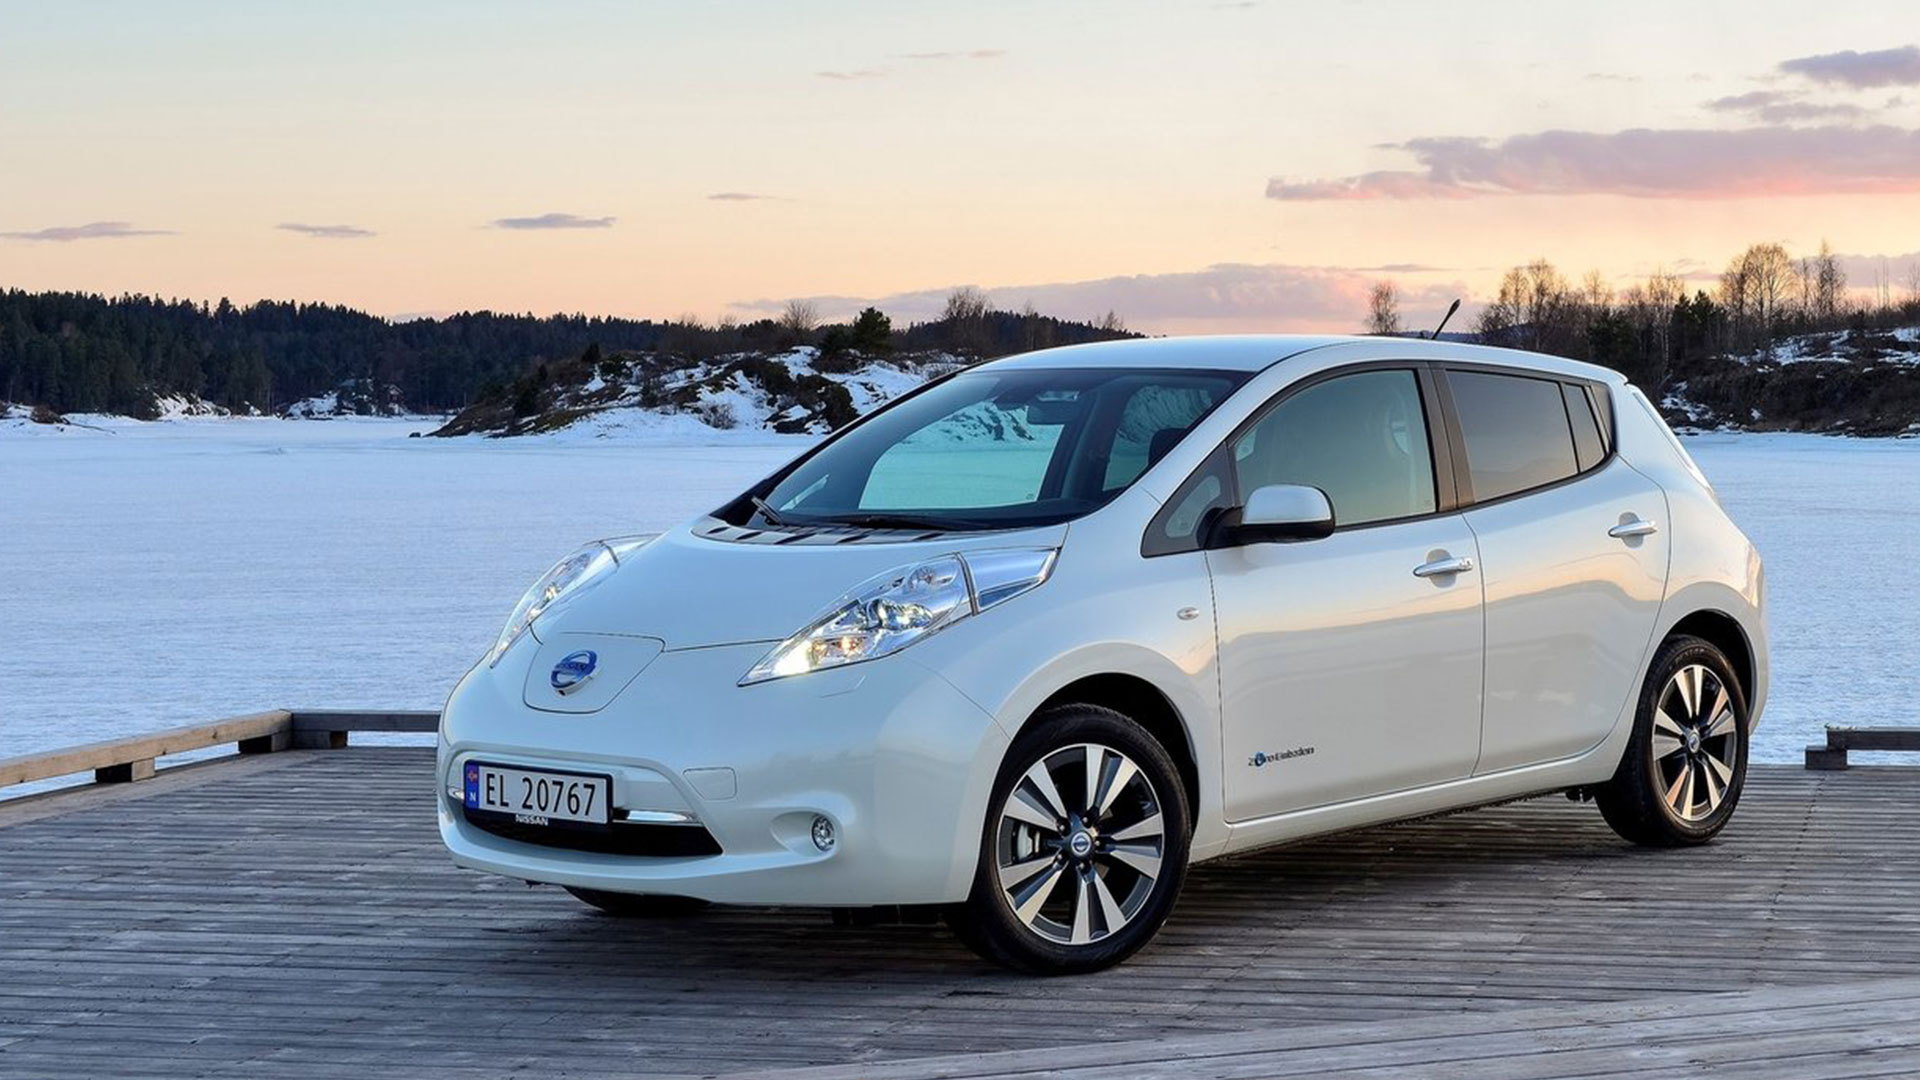 2016 Nissan Leaf Could Benefit From Larger Battery And 105